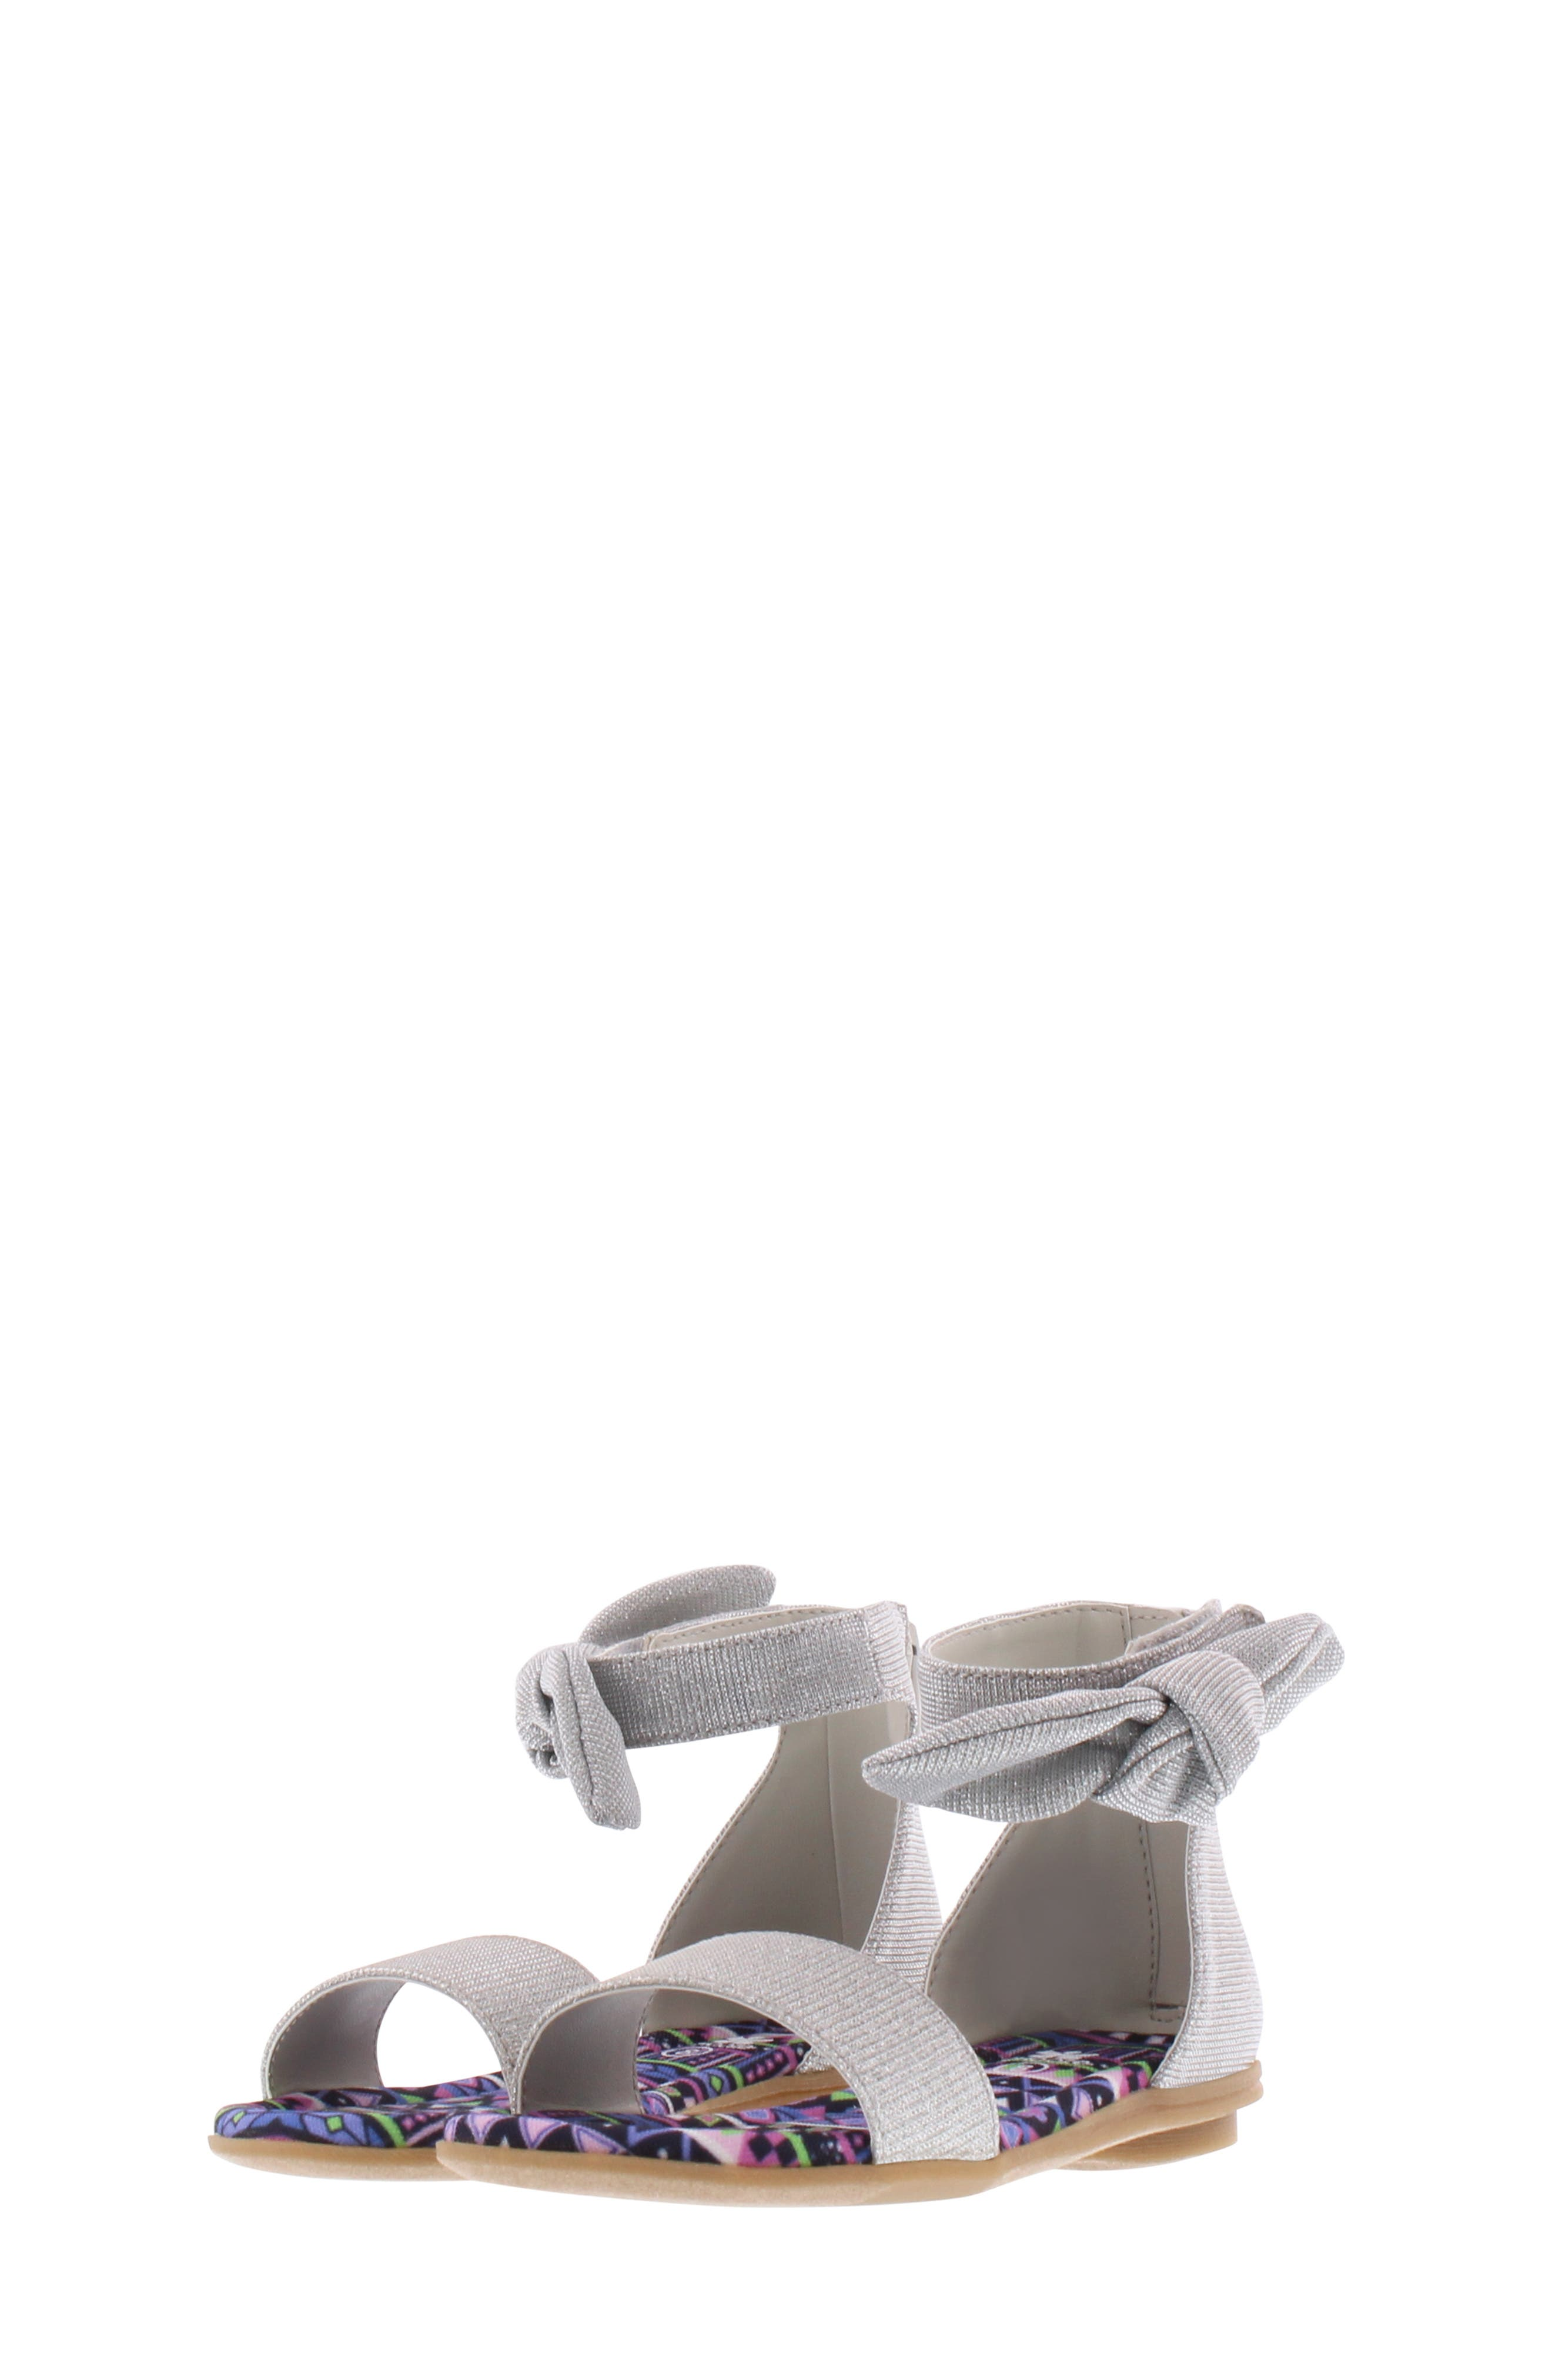 CHOOZE, Bright Daisy Sandal, Alternate thumbnail 9, color, SILVER